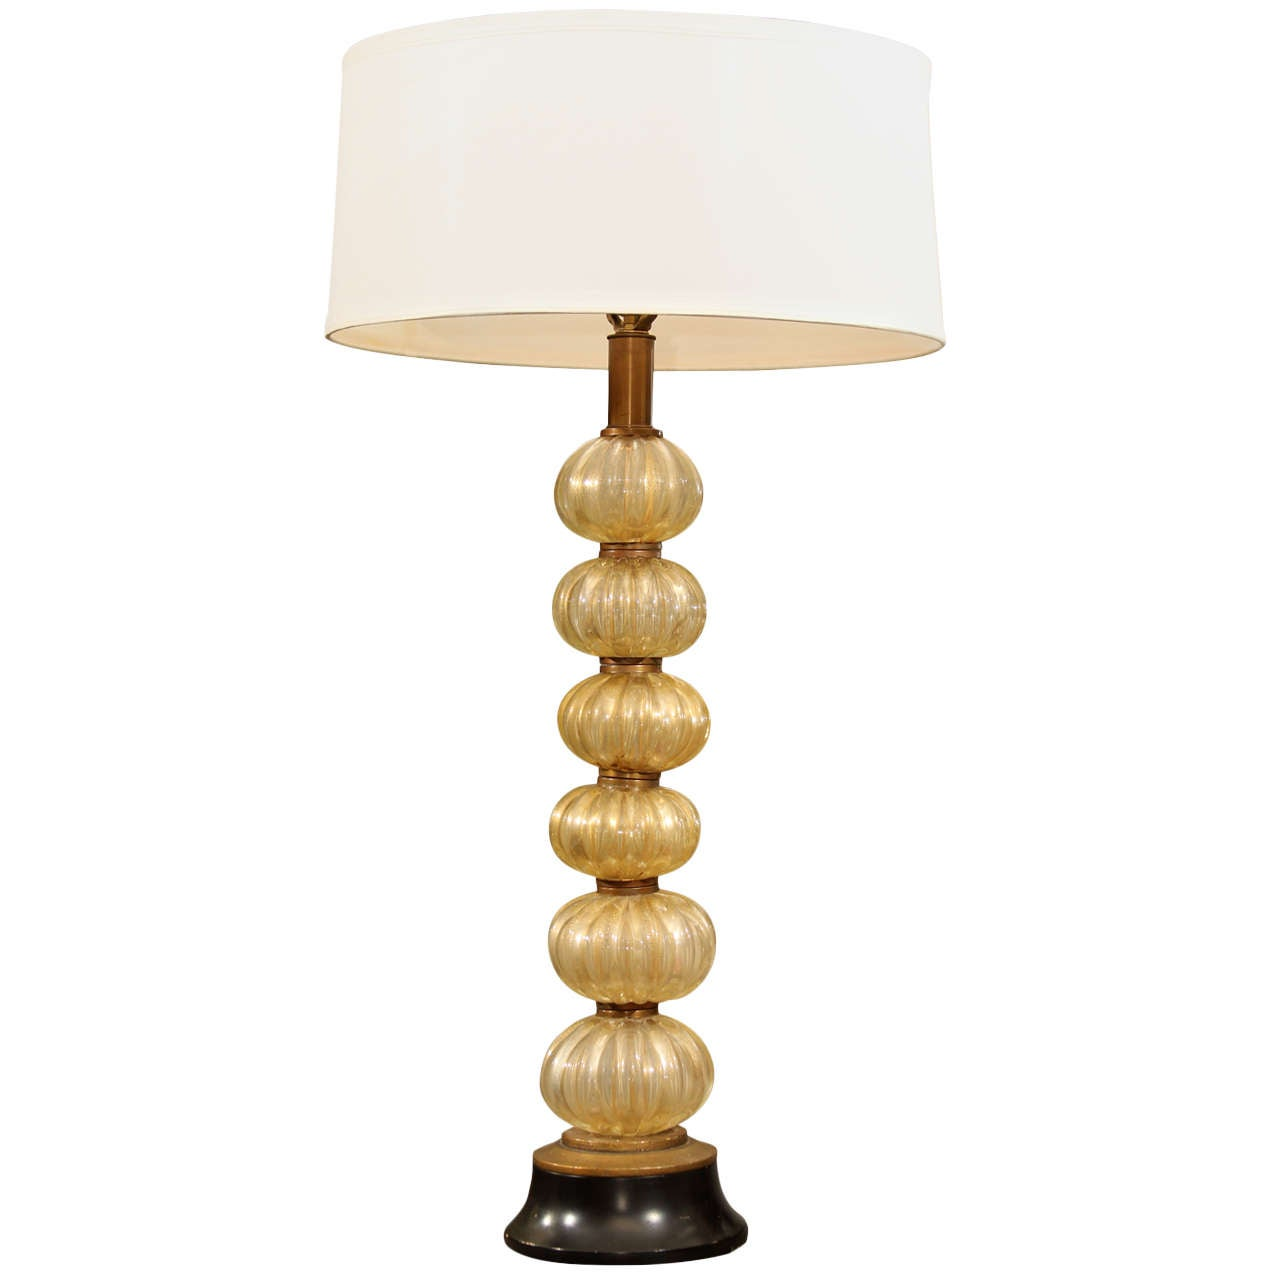 Murano Table Lamp For Sale